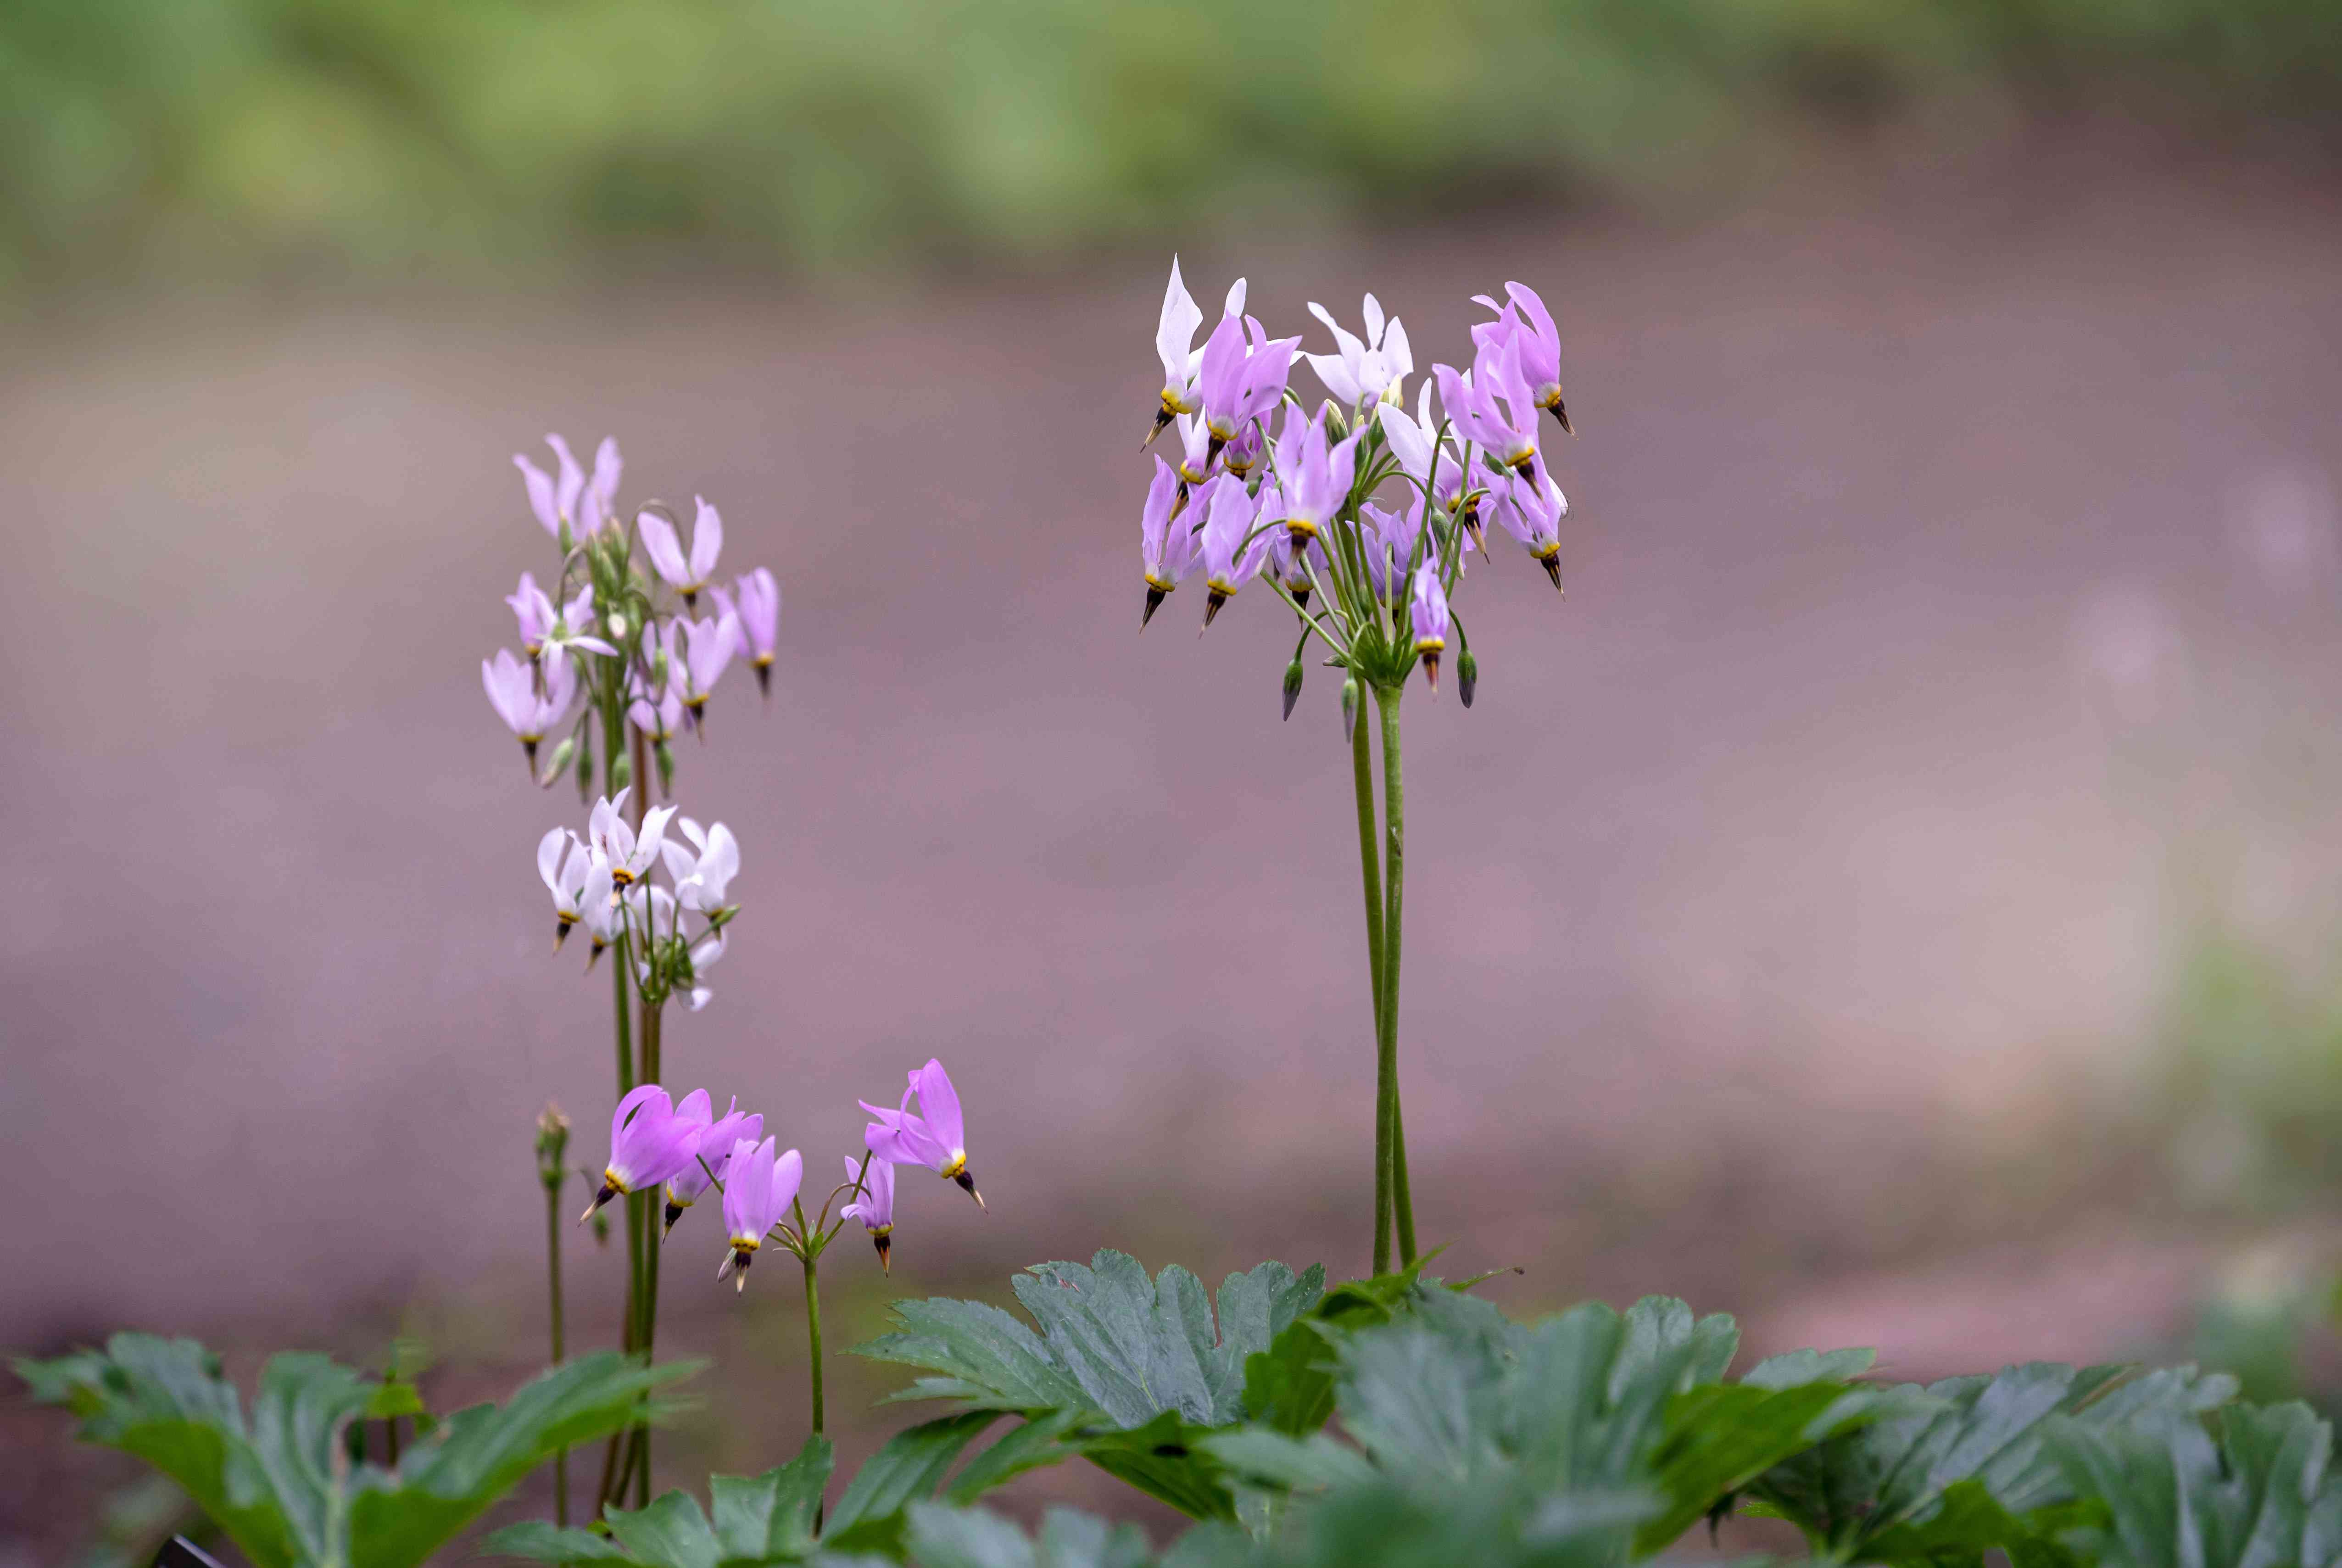 Shooting star plant with white and light pink flowers clustered on top of stems